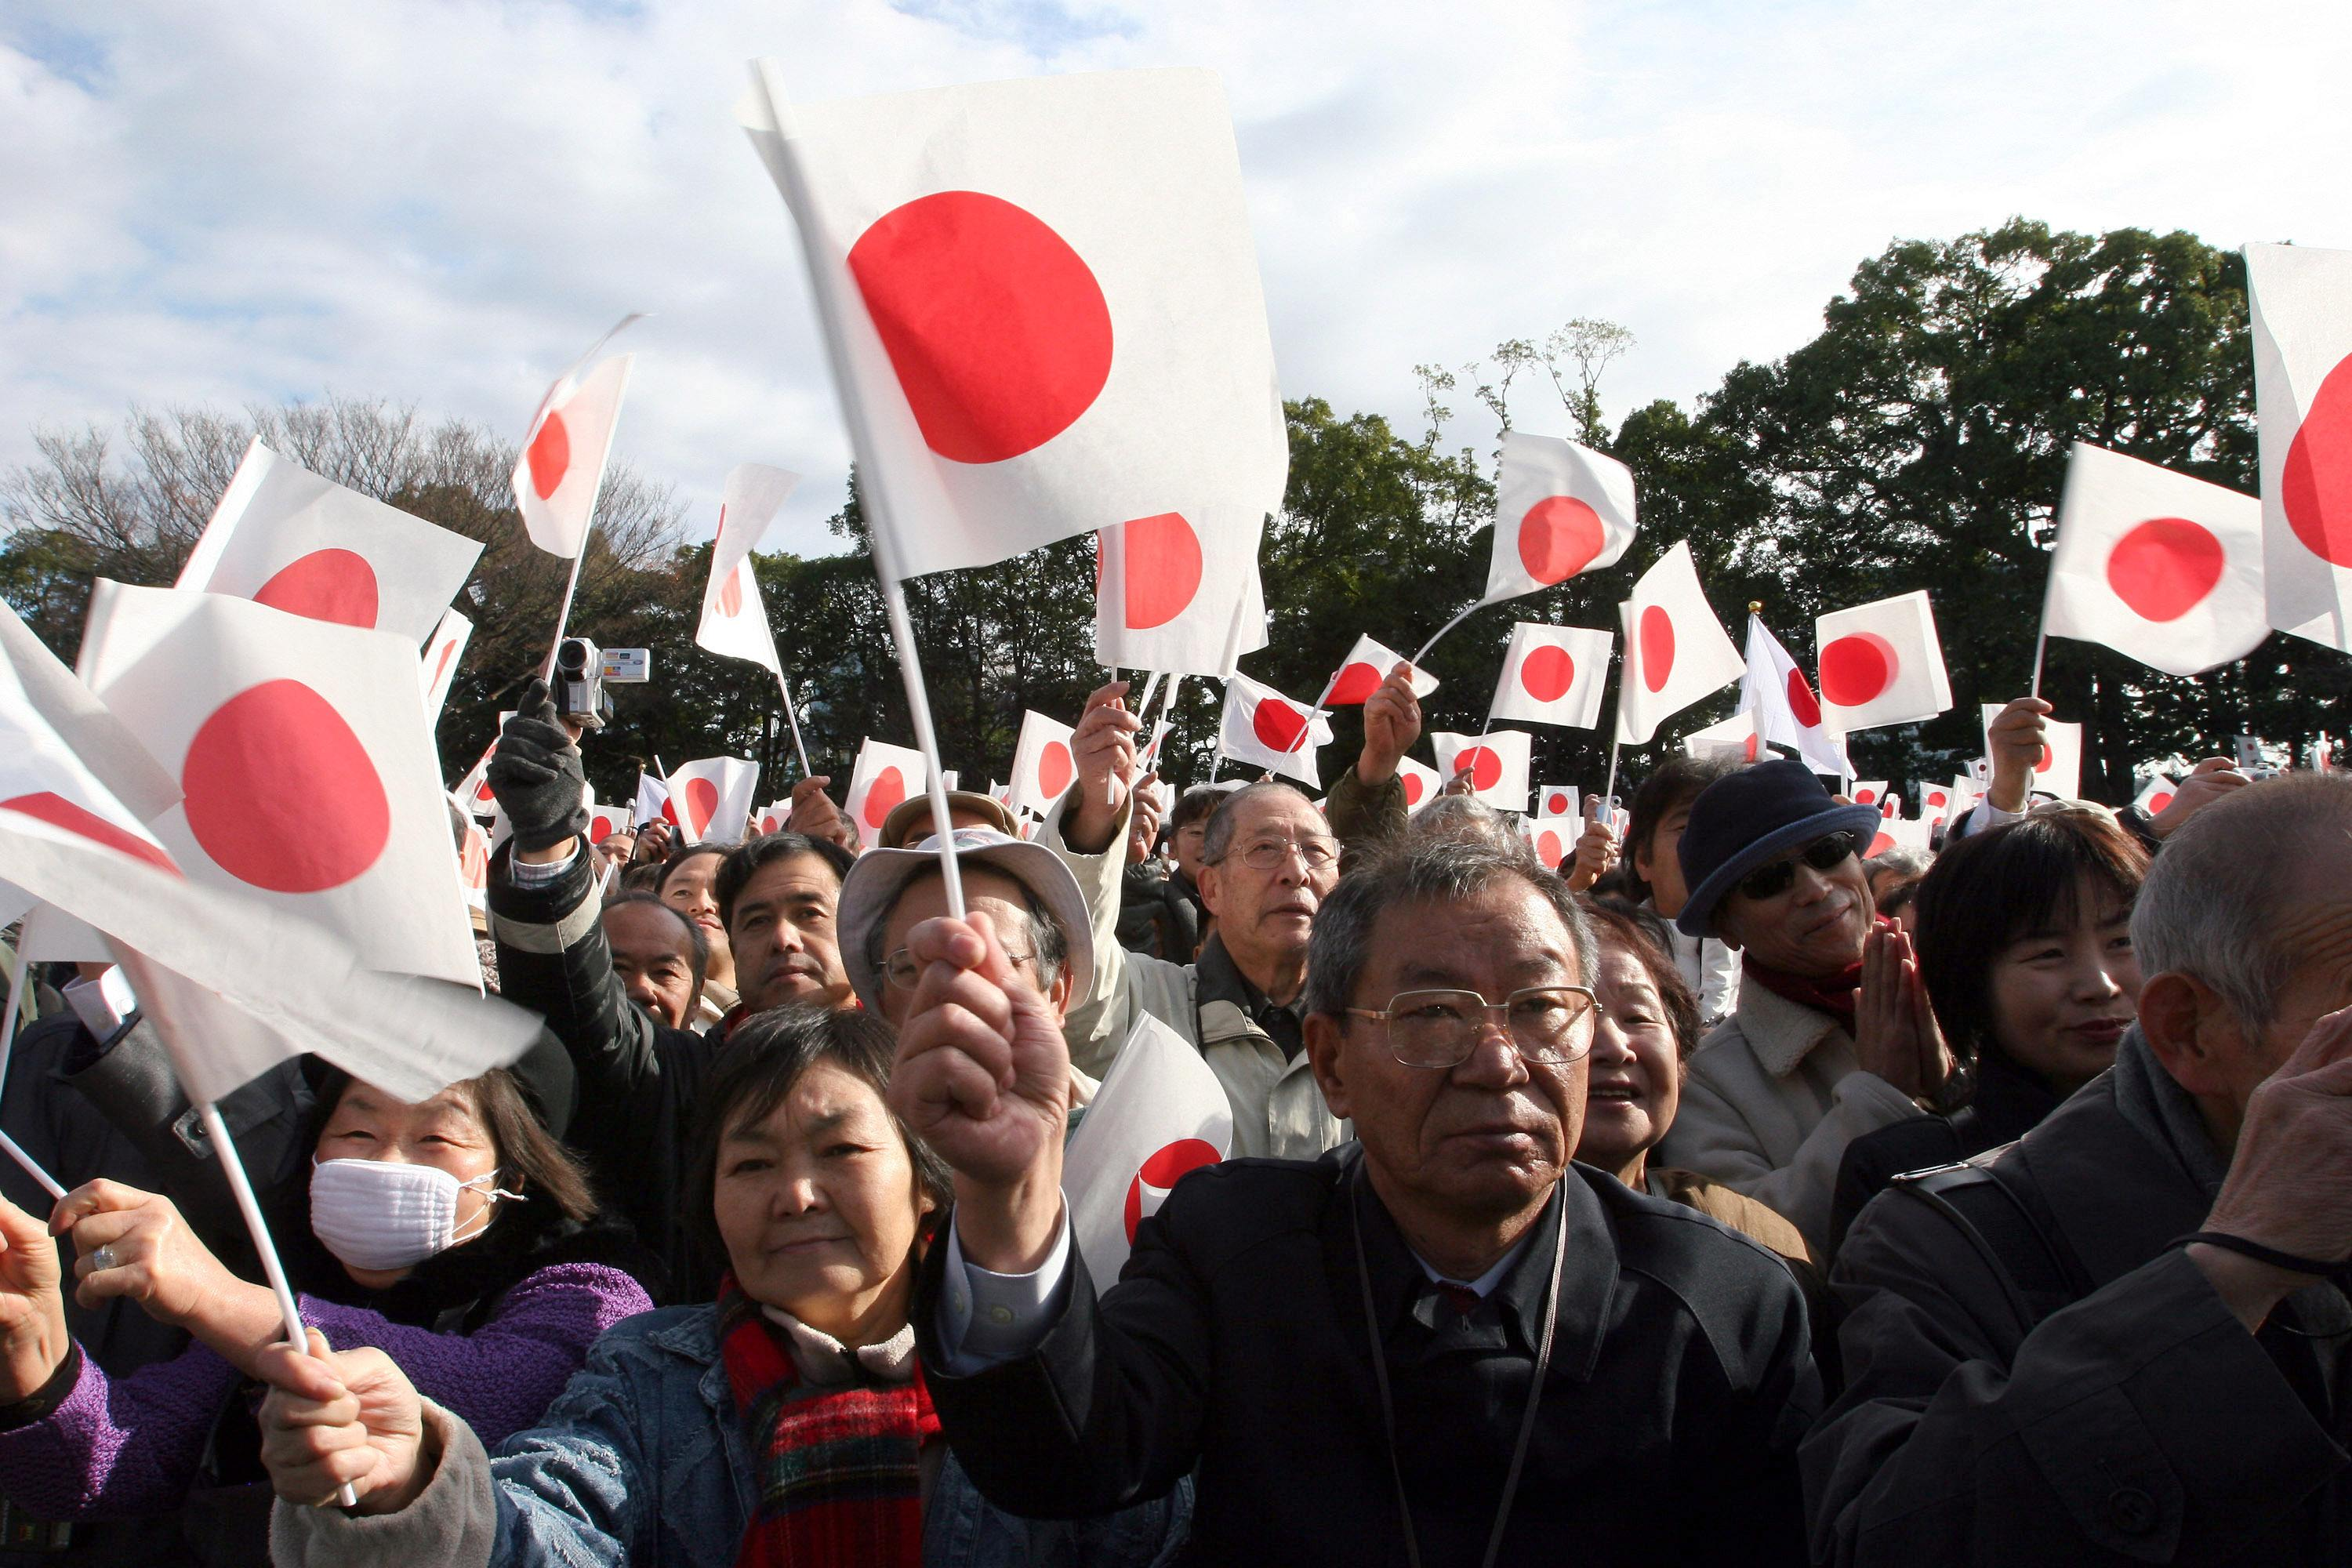 A crowd of people wave Japanese flags